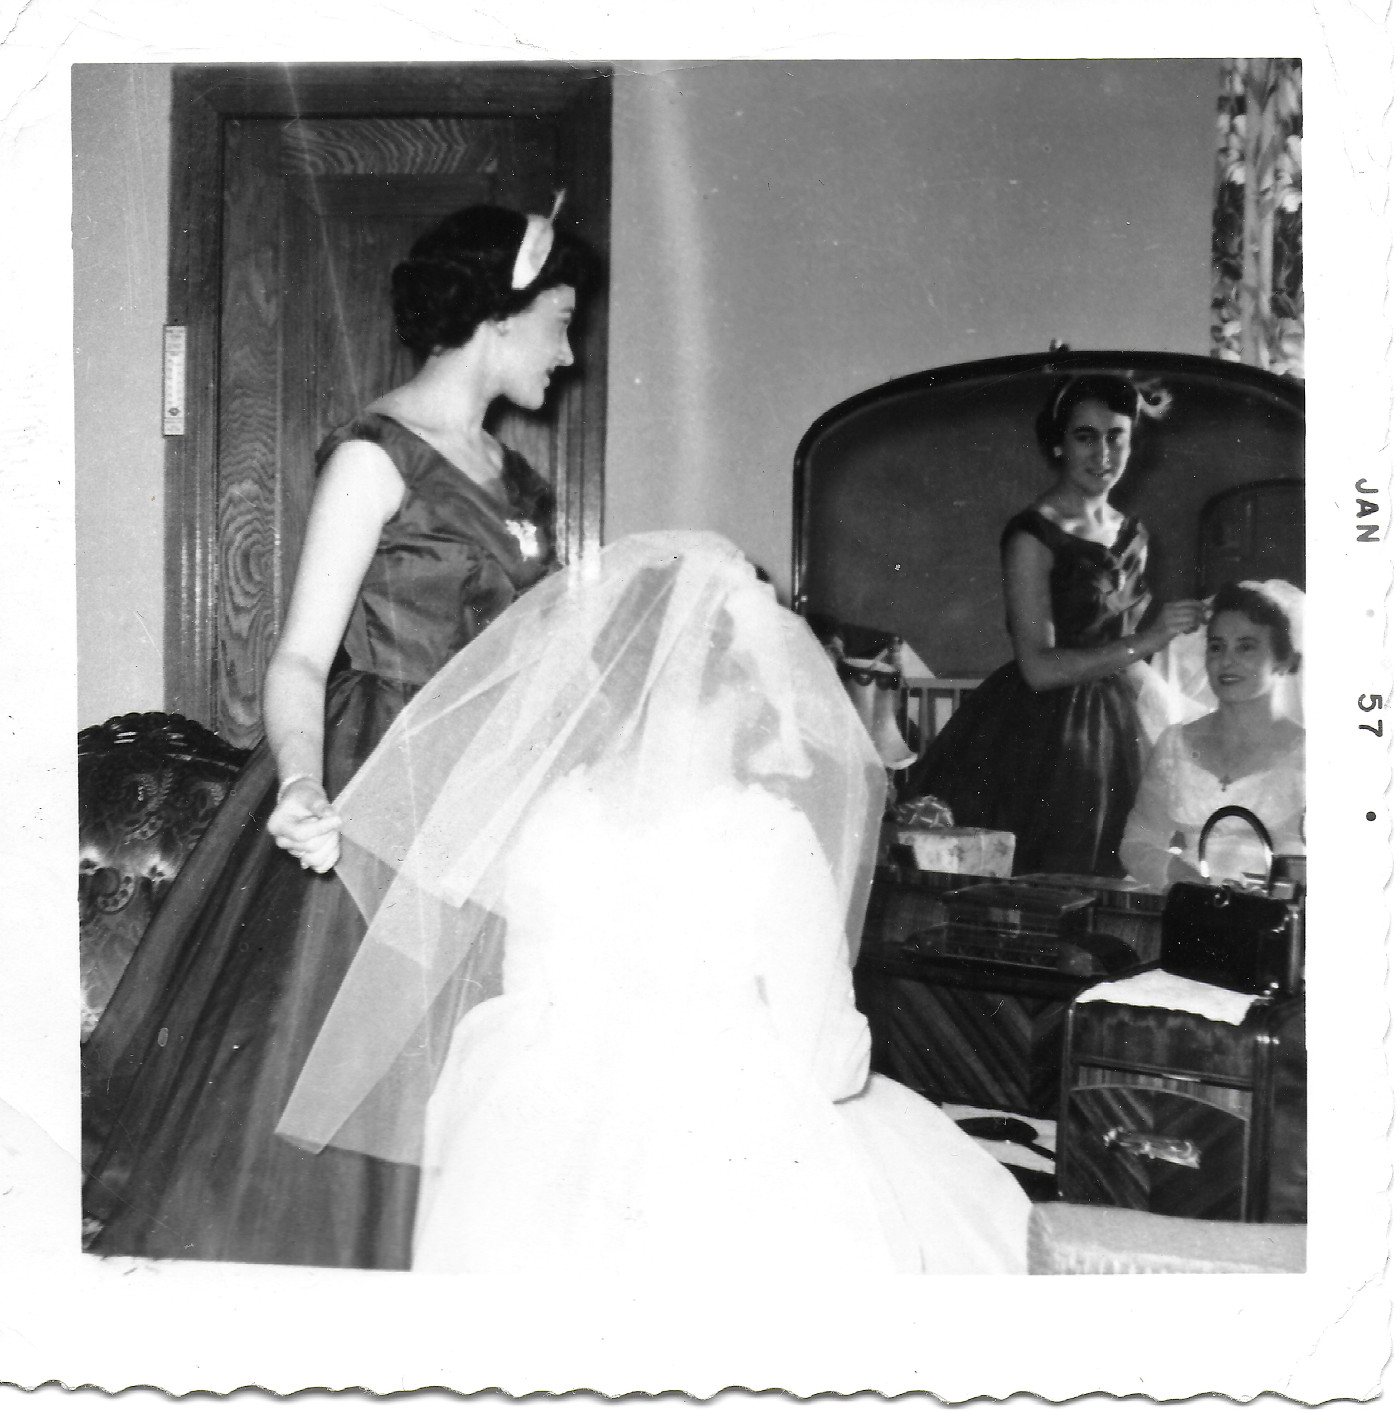 Bride preparations  Aliki Vallianos with her wedding dress, 1957. Montreal. Aristea's Vallianos Archive.  Source: Immigrec